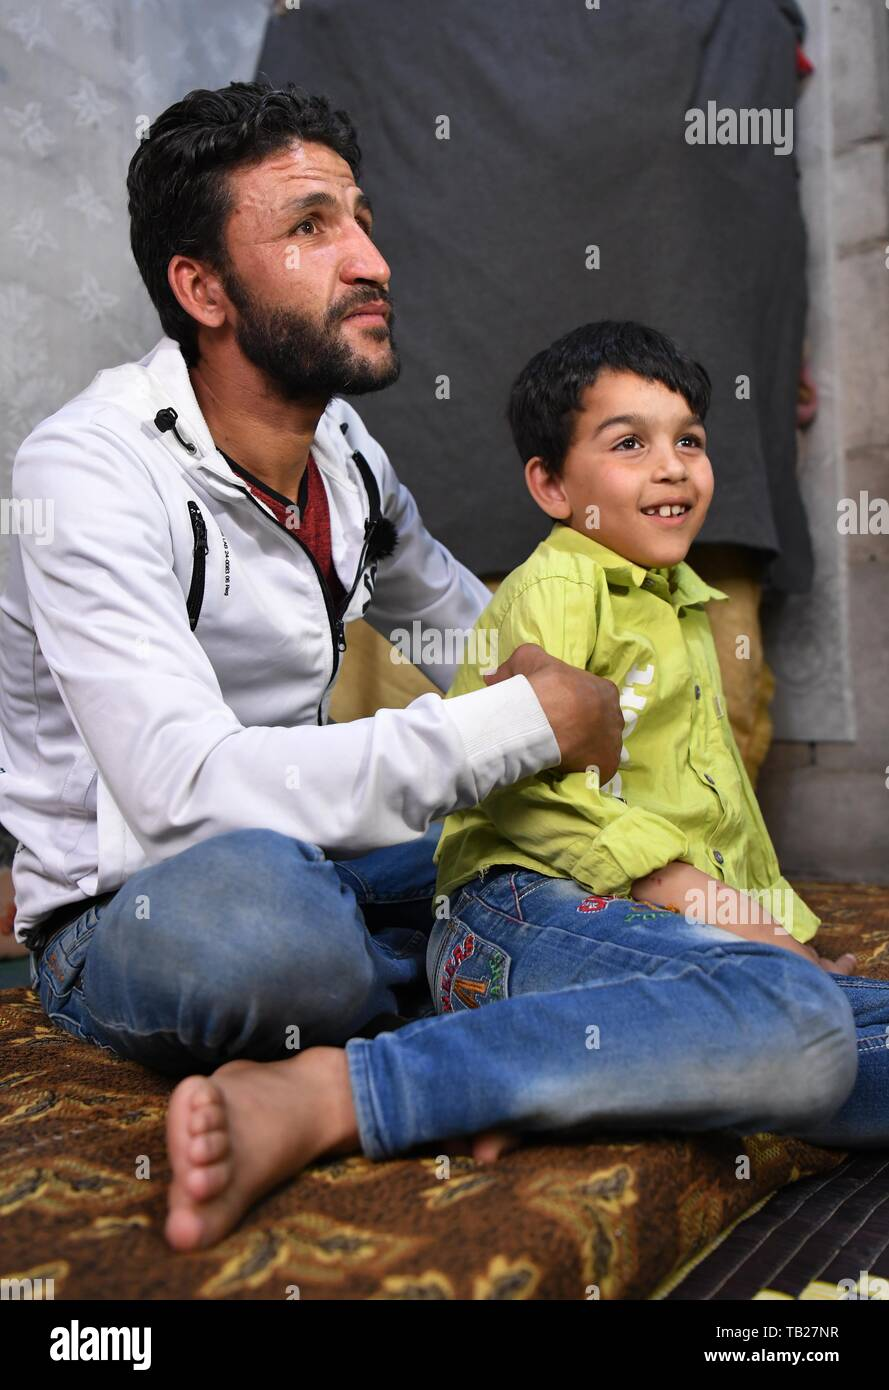 """Damascus, Syria. 28th May, 2019. Hussain Mossa (L) sits with his son Ibrahim in their unfinished house in the Jaramana suburb of Damascus, Syria, on May 28, 2019. For Hussain Mossa, whose childhood was peaceful and worth remembering, his son Ibrahim is not so lucky as him. Hussain's older son, Ibrahim, was born in 2011 when the Syrian crisis began. In Syria, those who were born during the war were regarded as """"Generation of War."""" They were unable to have a normal or healthy childhood like many of their parents did. Credit: Ammar Safarjalani/Xinhua/Alamy Live News Stock Photo"""